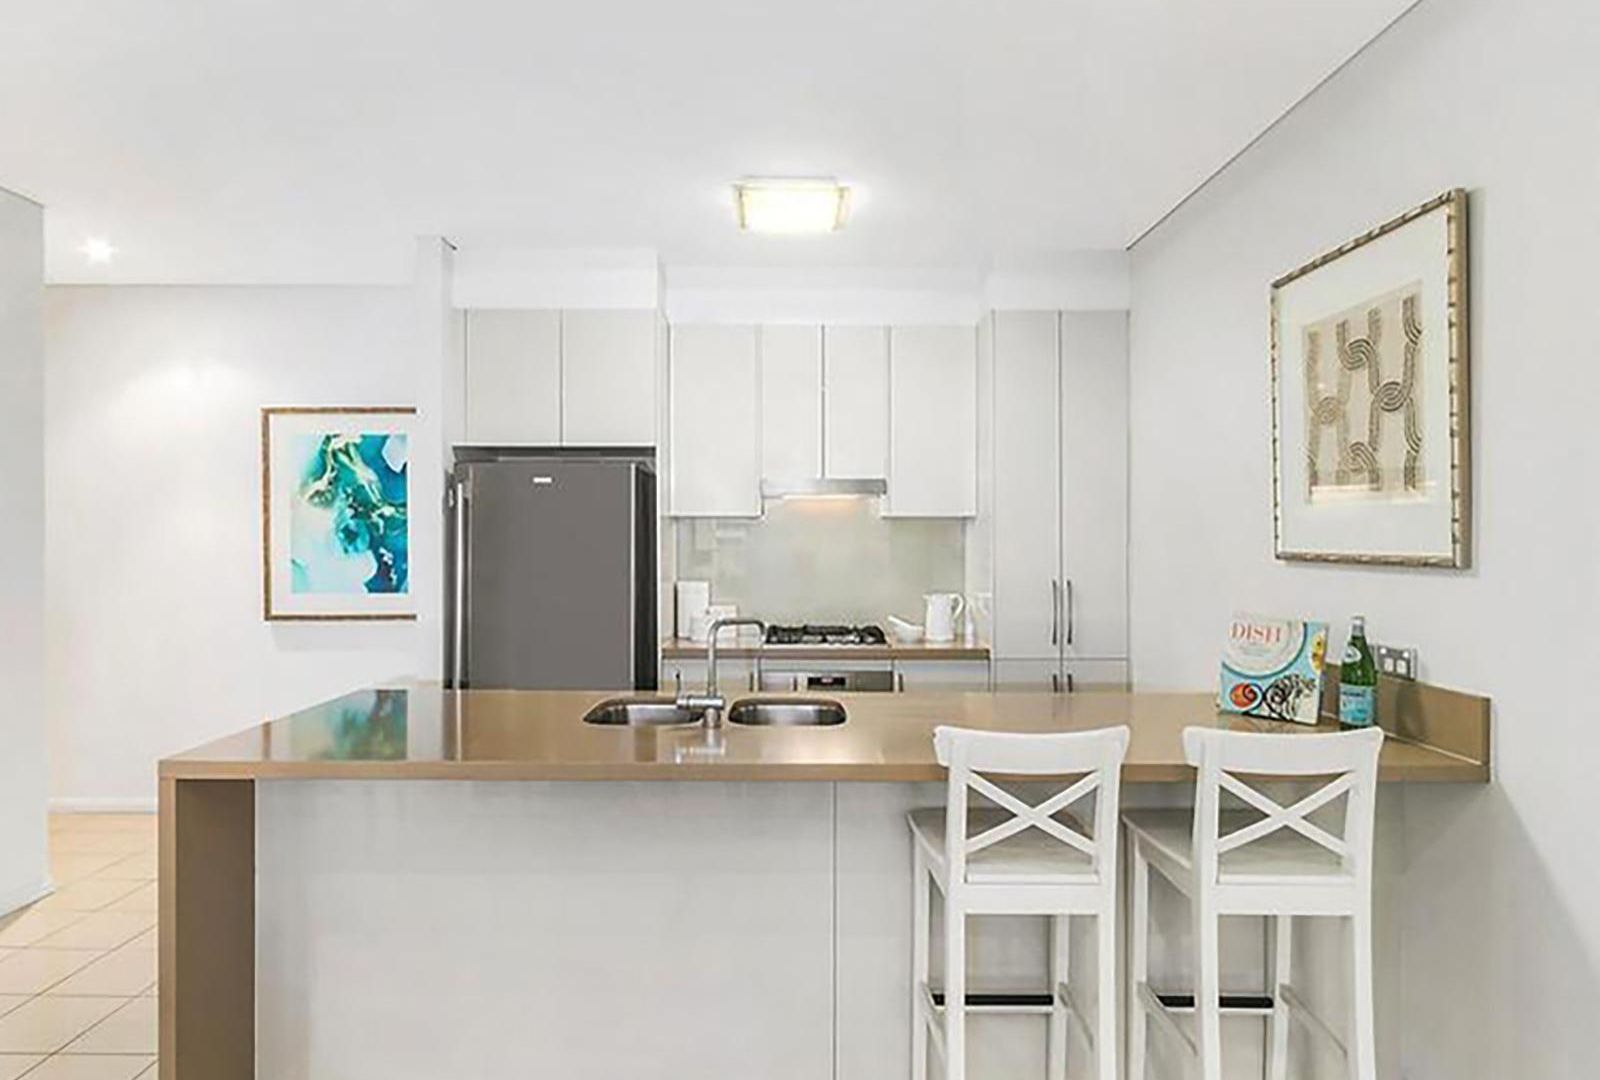 217/4 Seven Street, Epping NSW 2121, Image 1